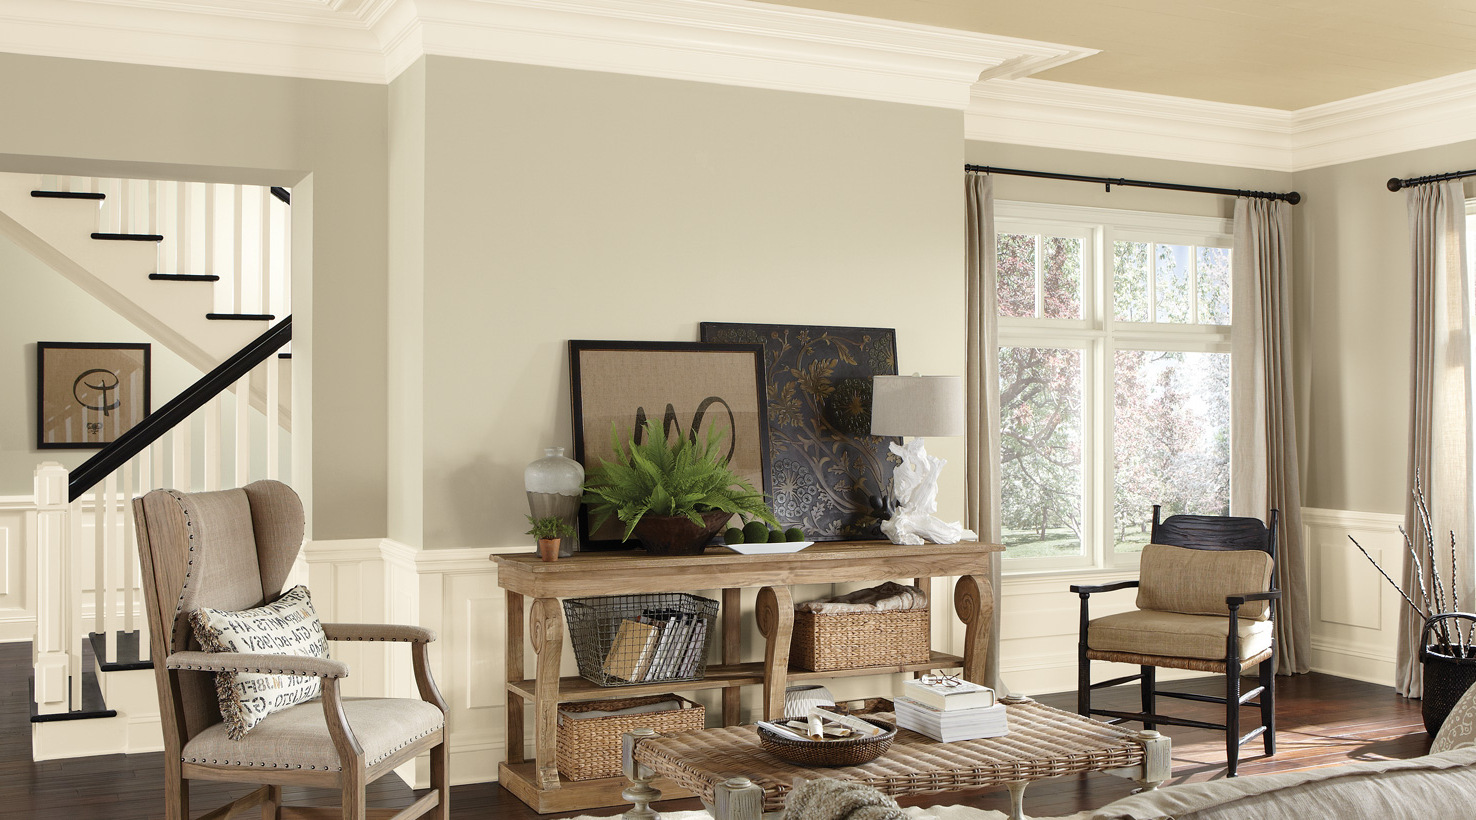 Best paint color for living room ideas to decorate living - Photos of living room paint colors ...